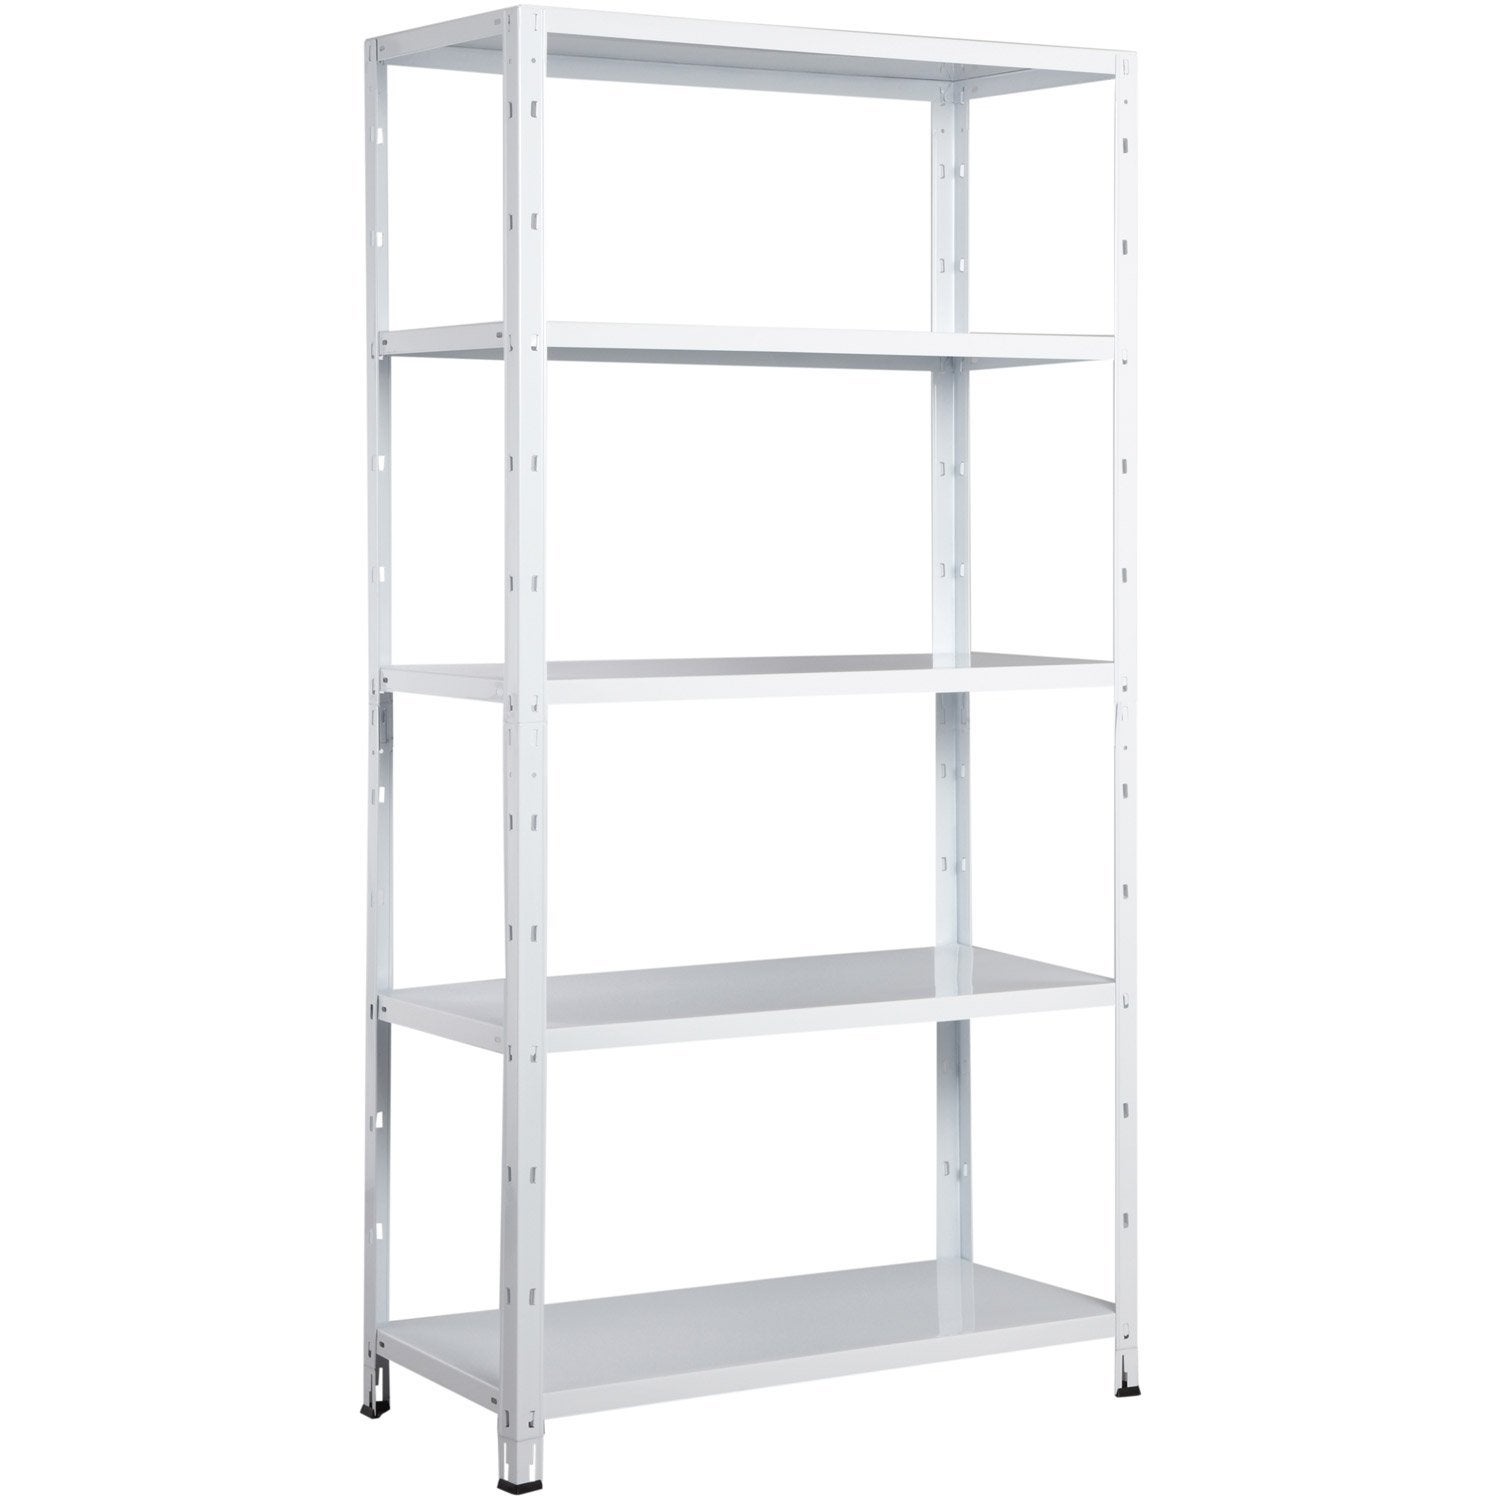 Etag re en acier epoxy blanc 5 tablettes avasco clicker - Etagere metal leroy merlin ...